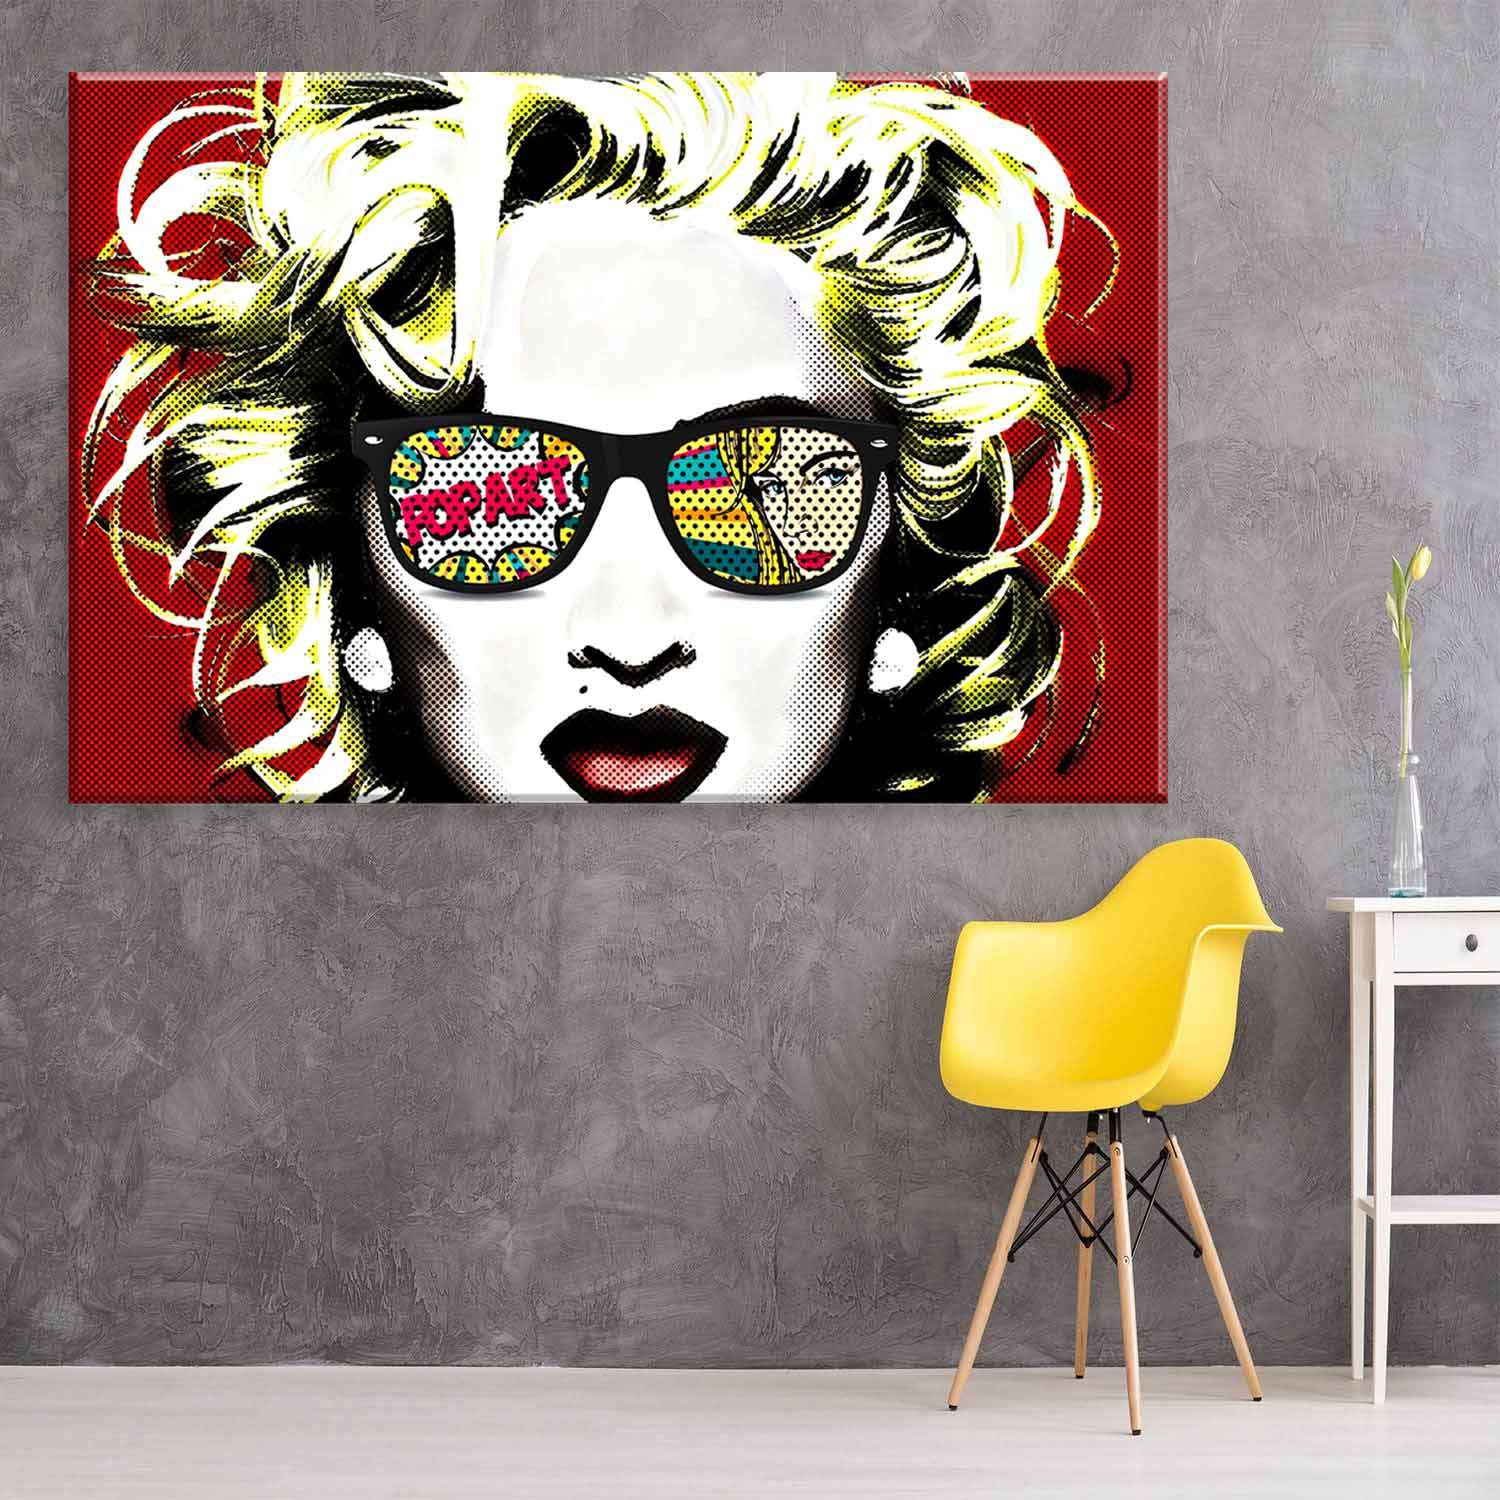 38d584307 Tela Decorativa em Canvas Mari Pop